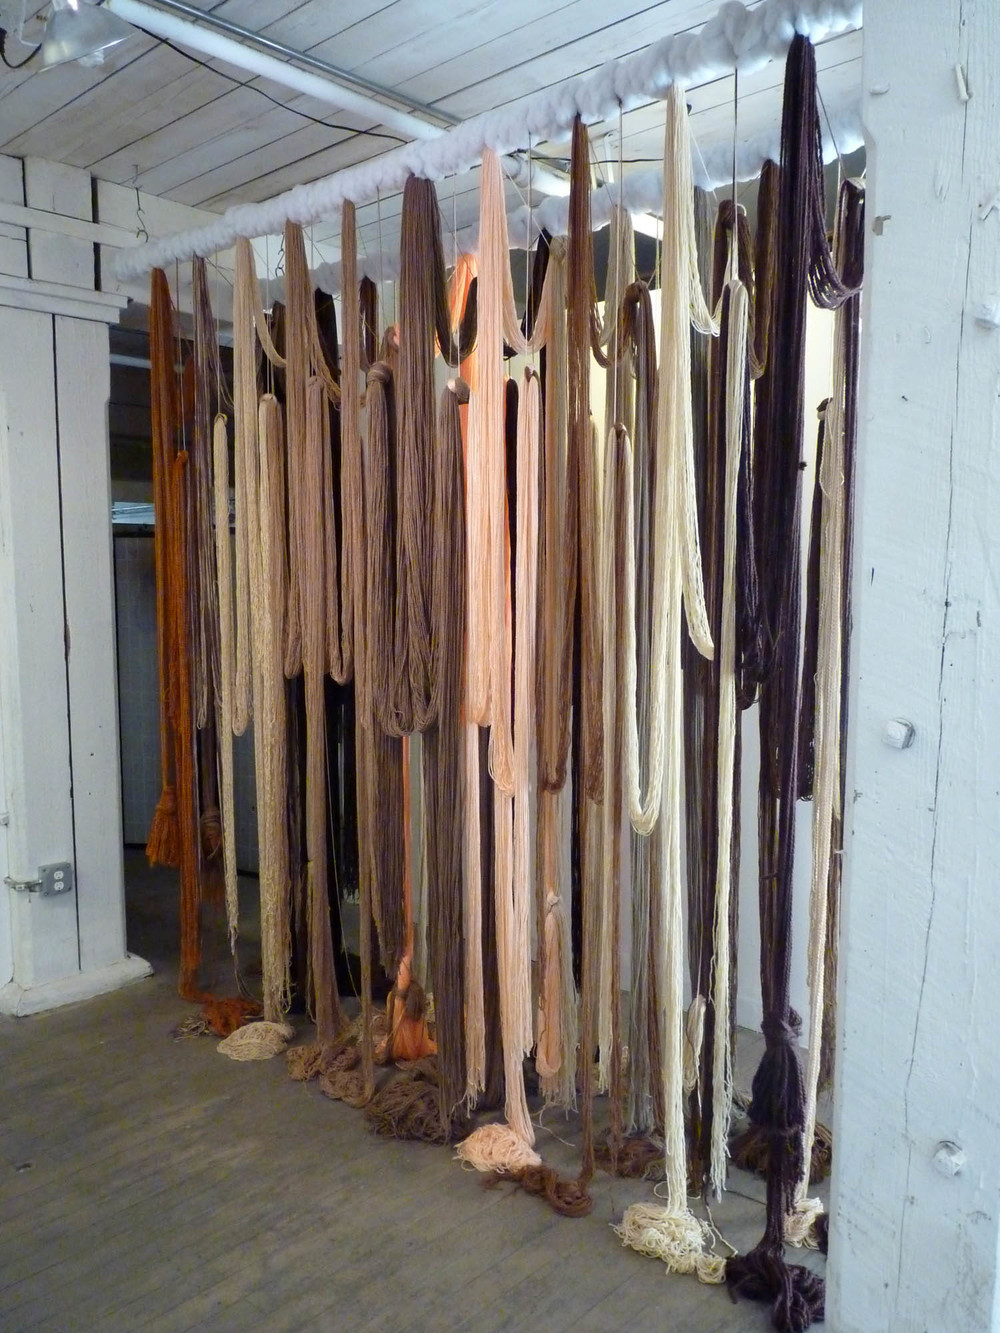 A Valence, 2012, Yarn, wood, poly-fil and hardware, 10 x 2 x 10 feet